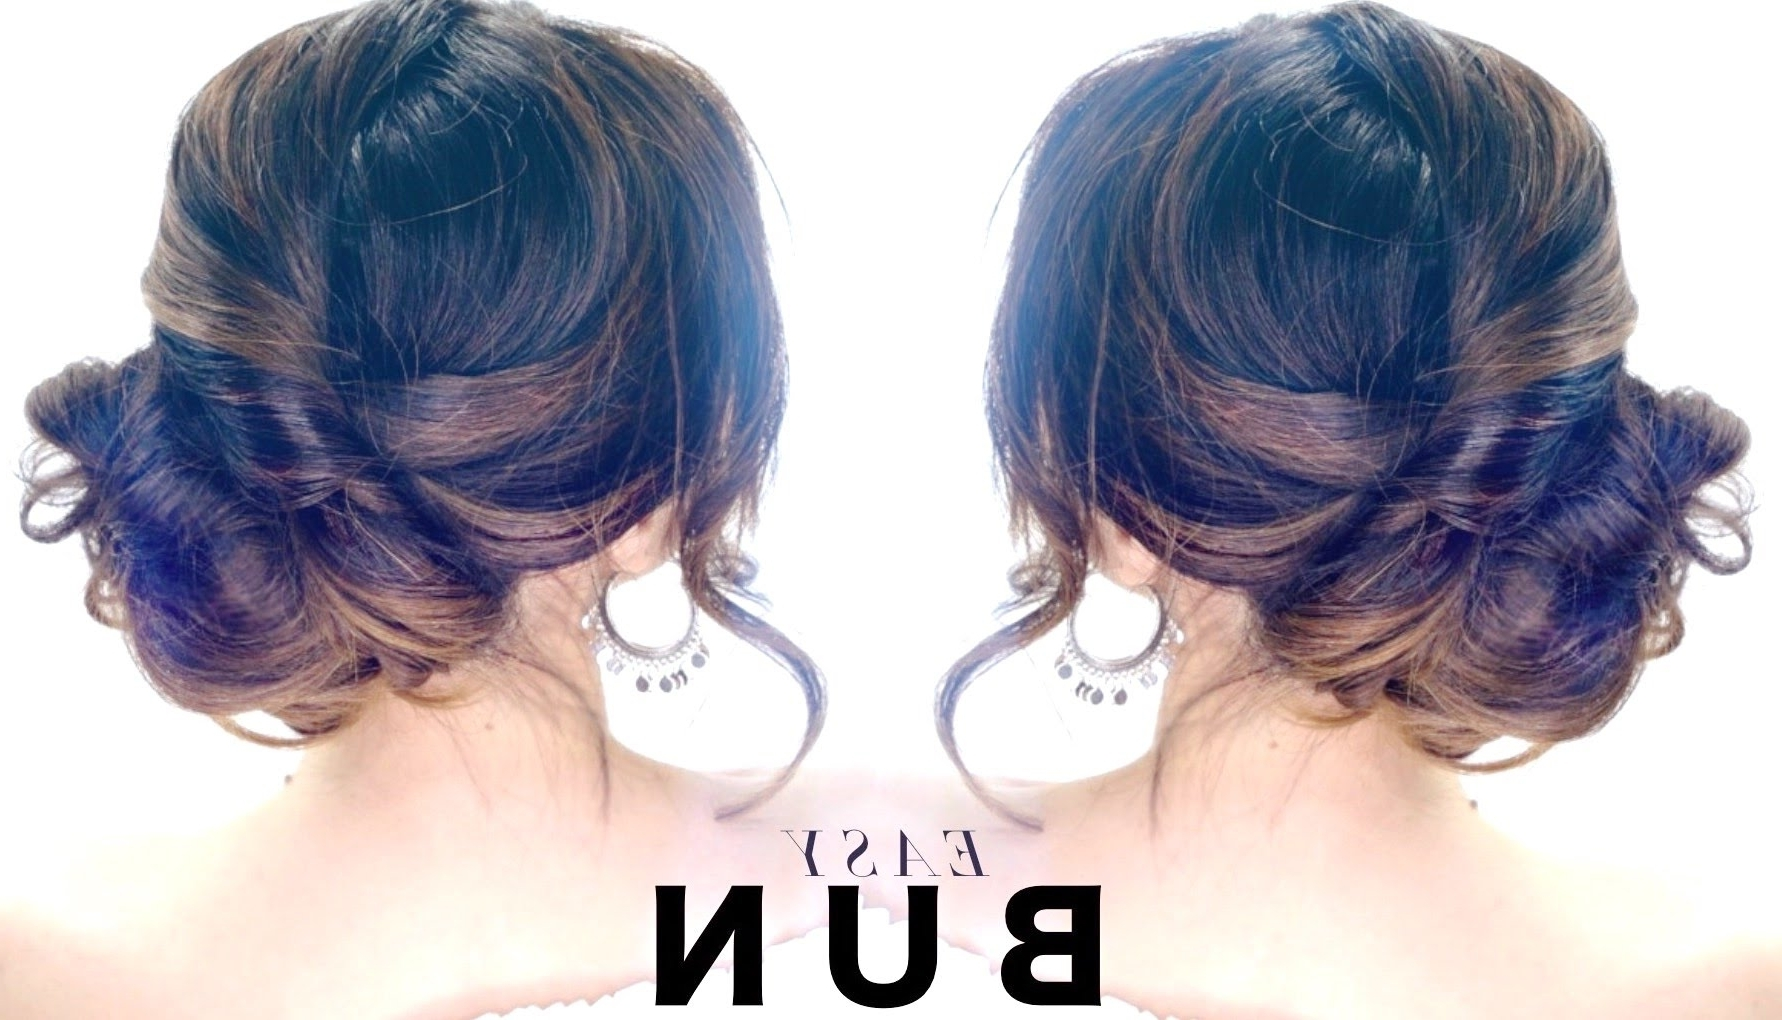 3 Minute Elegant Side Bun Hairstyle ☆ Easy Summer Updo Hairstyles With Regard To Funky Updo Hairstyles For Long Hair (View 3 of 15)